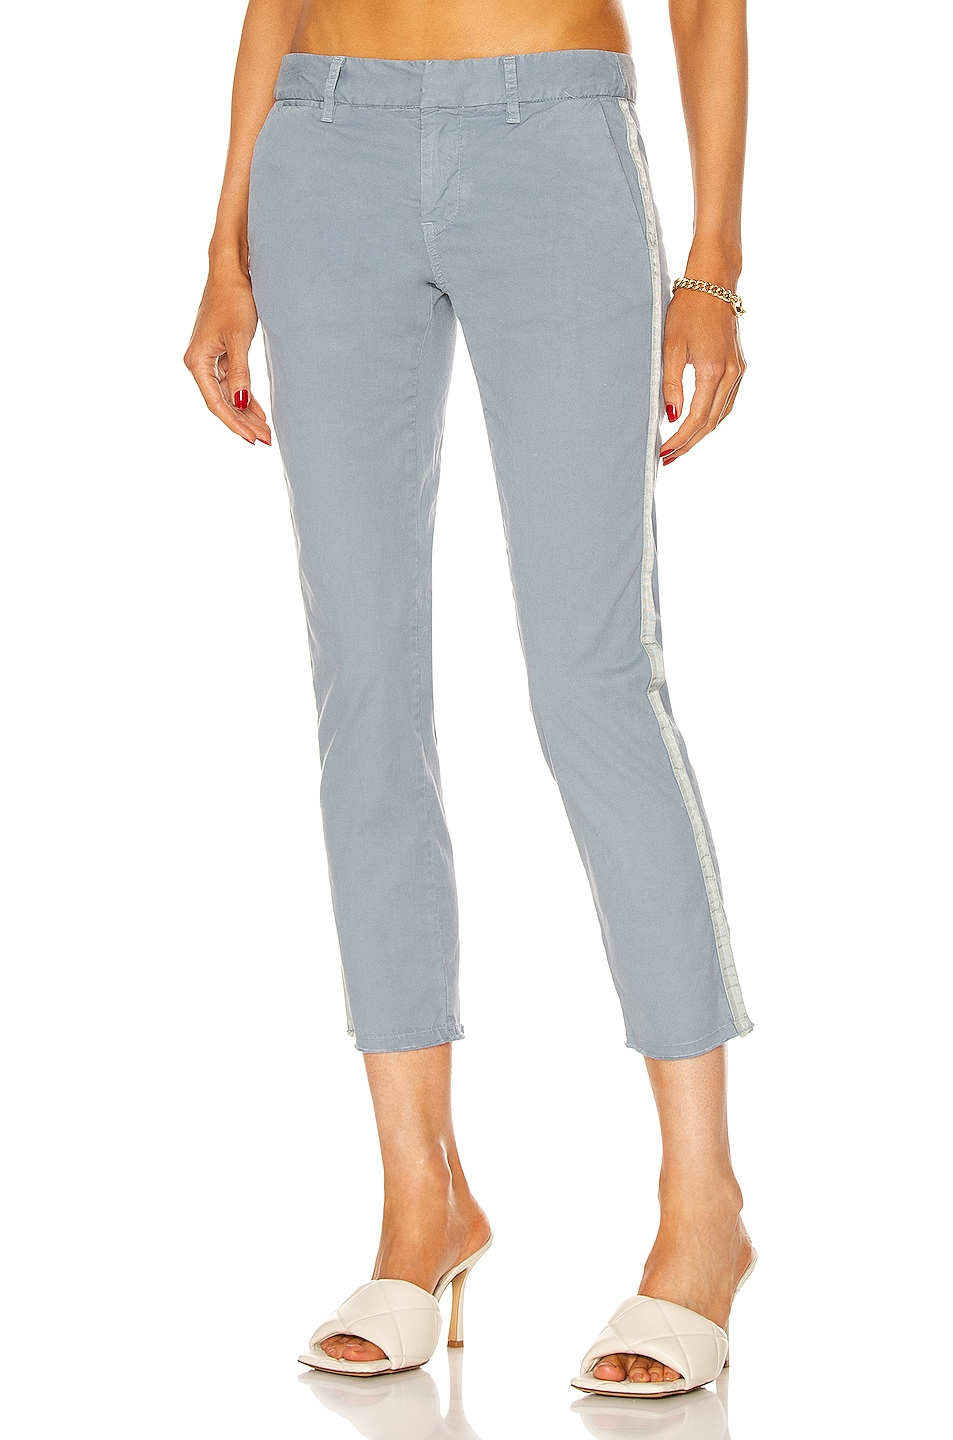 Image 1 of NILI LOTAN East Hampton Tape Pant in Slate Blue & Light Grey Tape